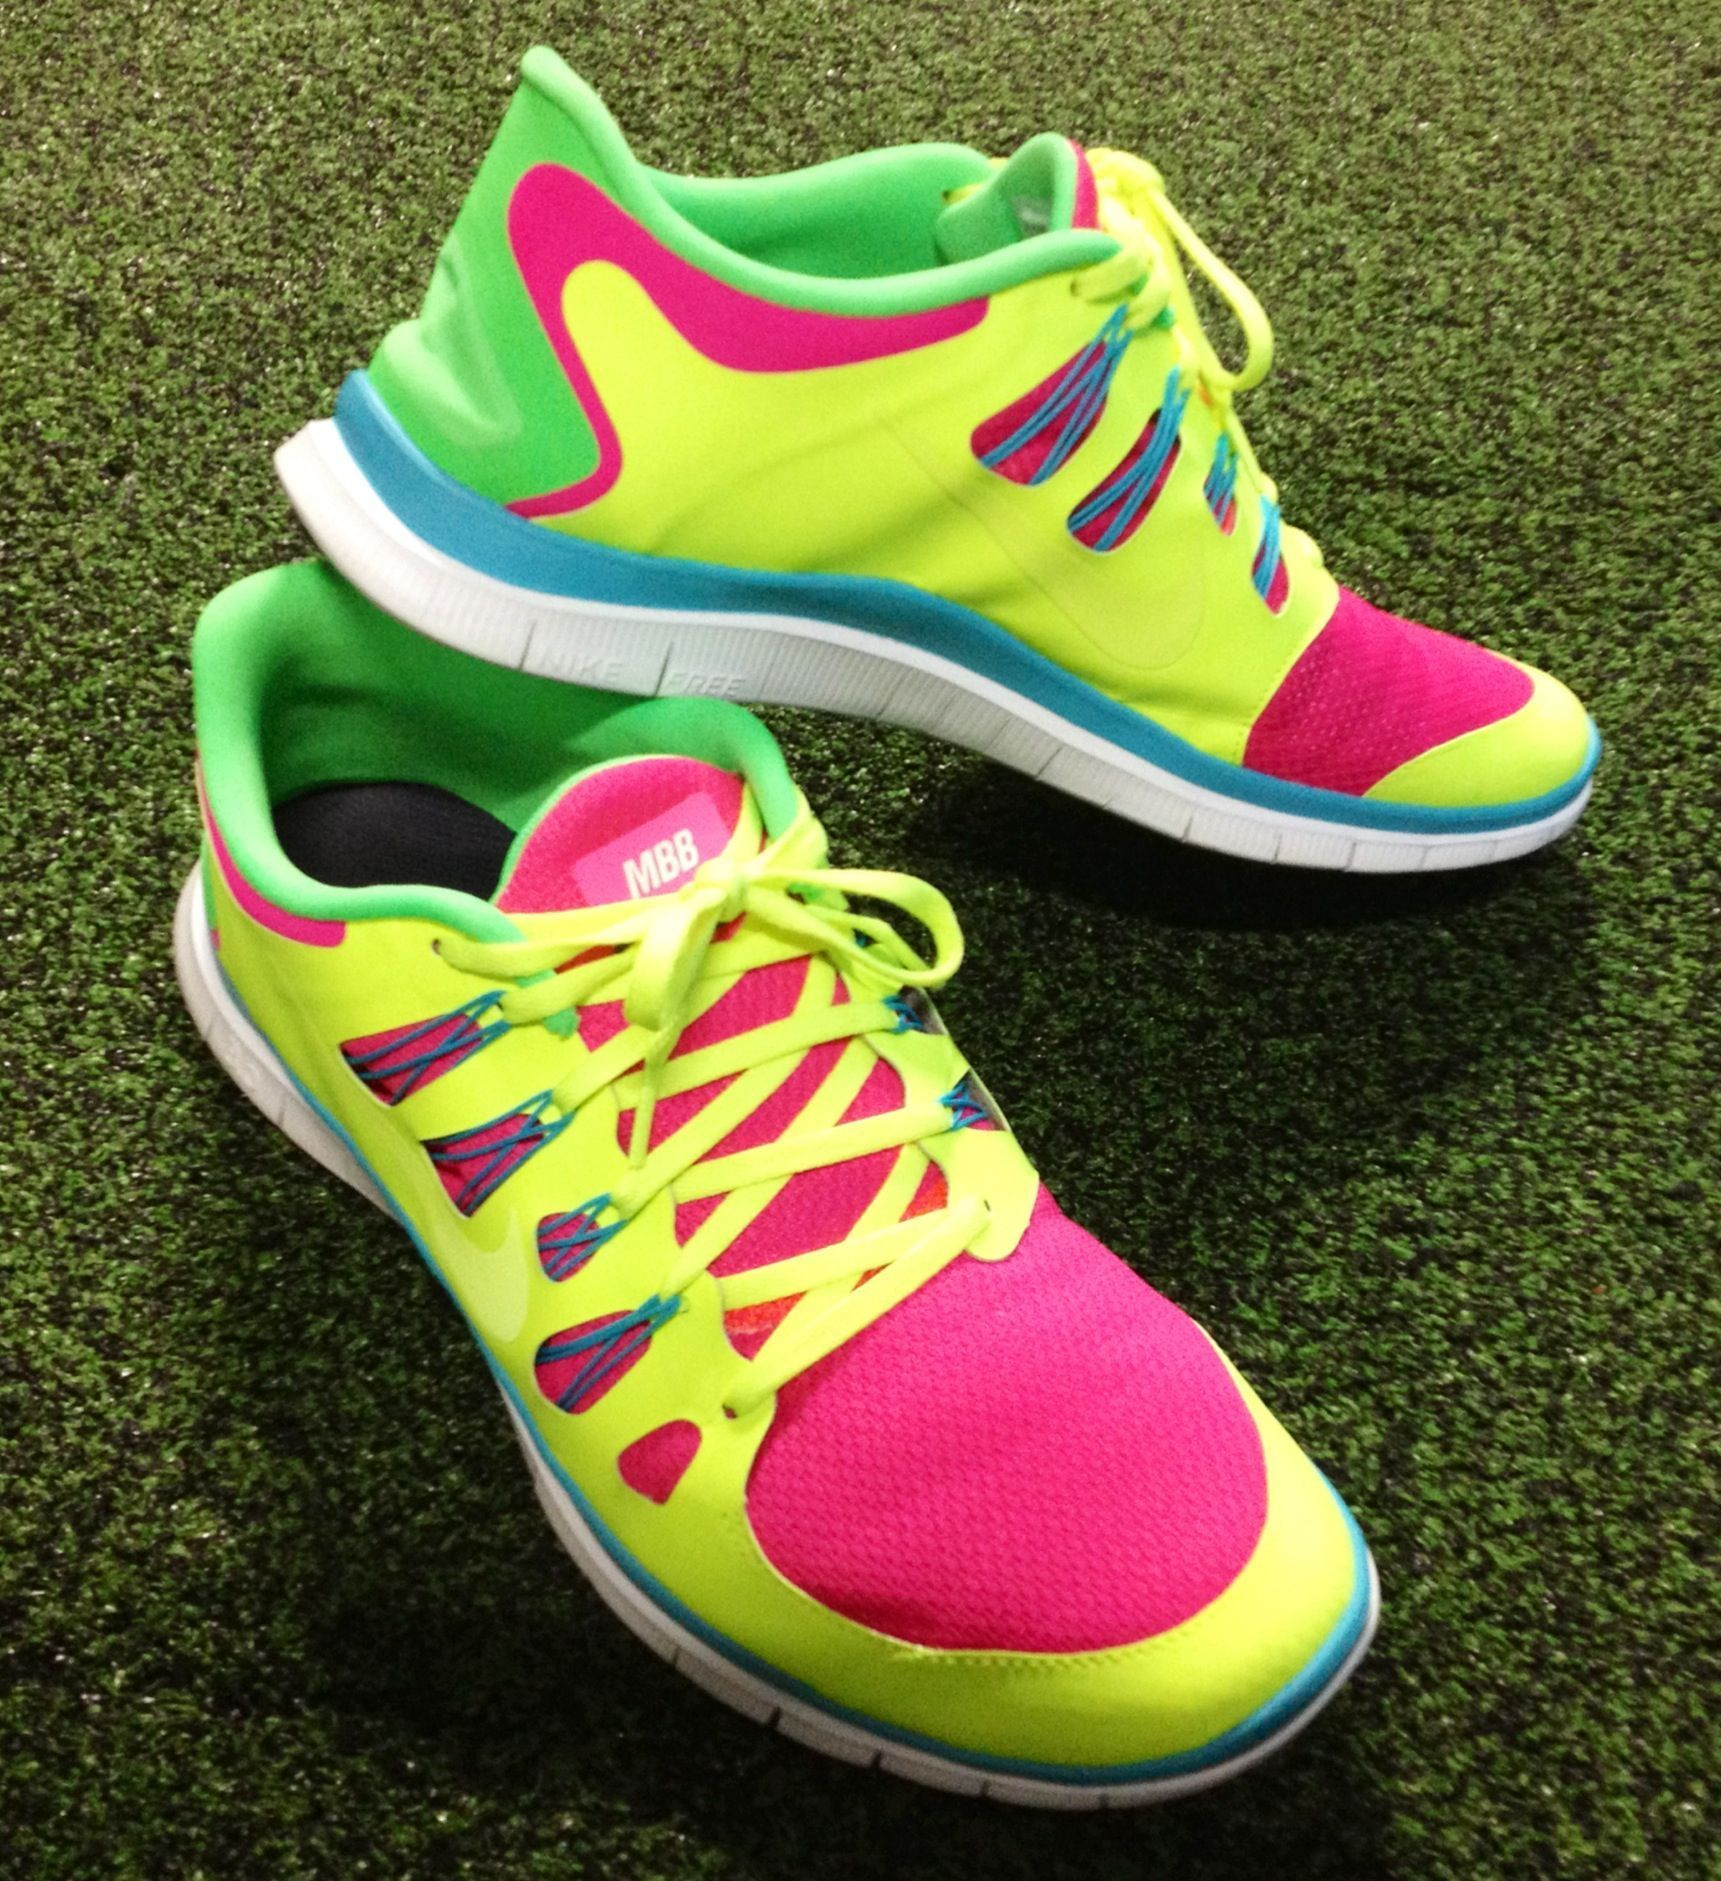 New custom MBB kicks! #fitness #workout #lover #style #personaltrainer #bootcamp #fitfam #healthy #e...